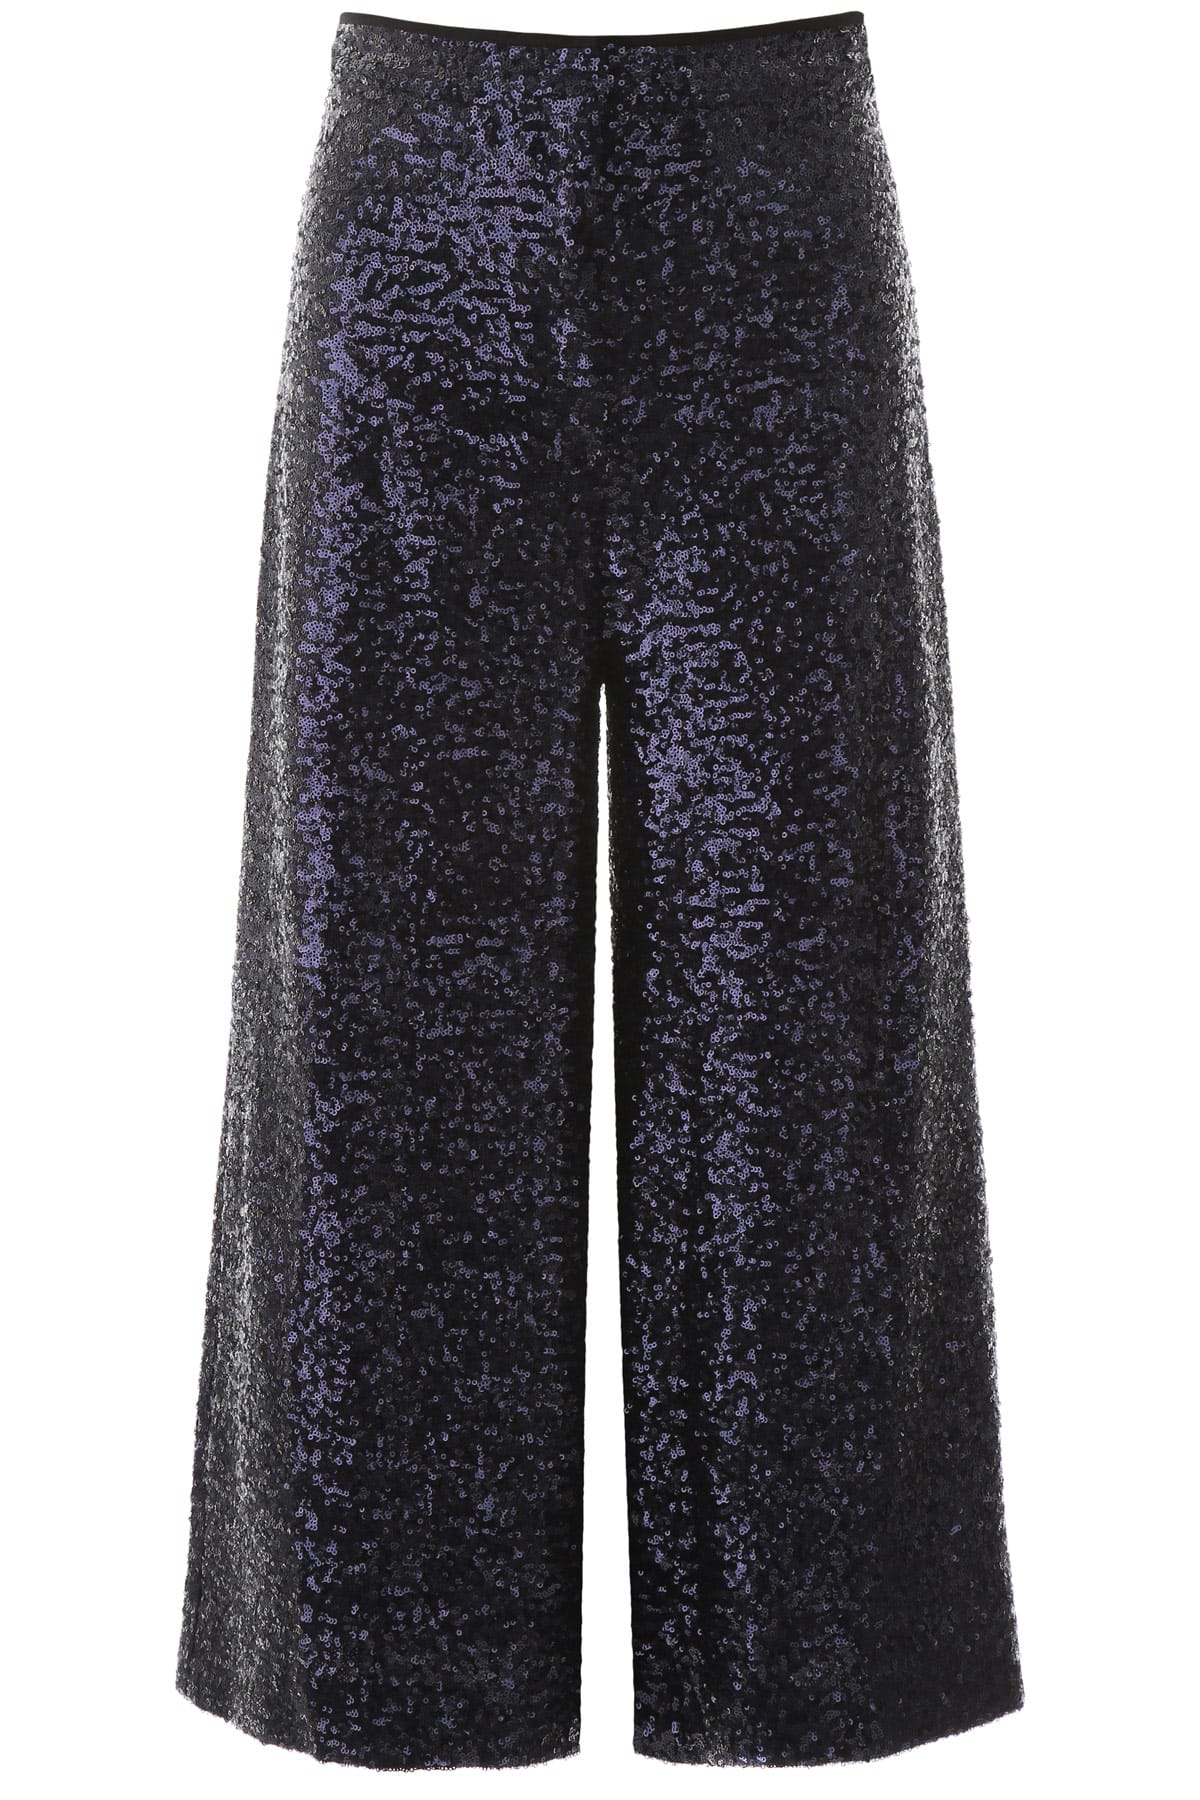 IN THE MOOD FOR LOVE SEQUINED CULOTTE TROUSERS S Blue